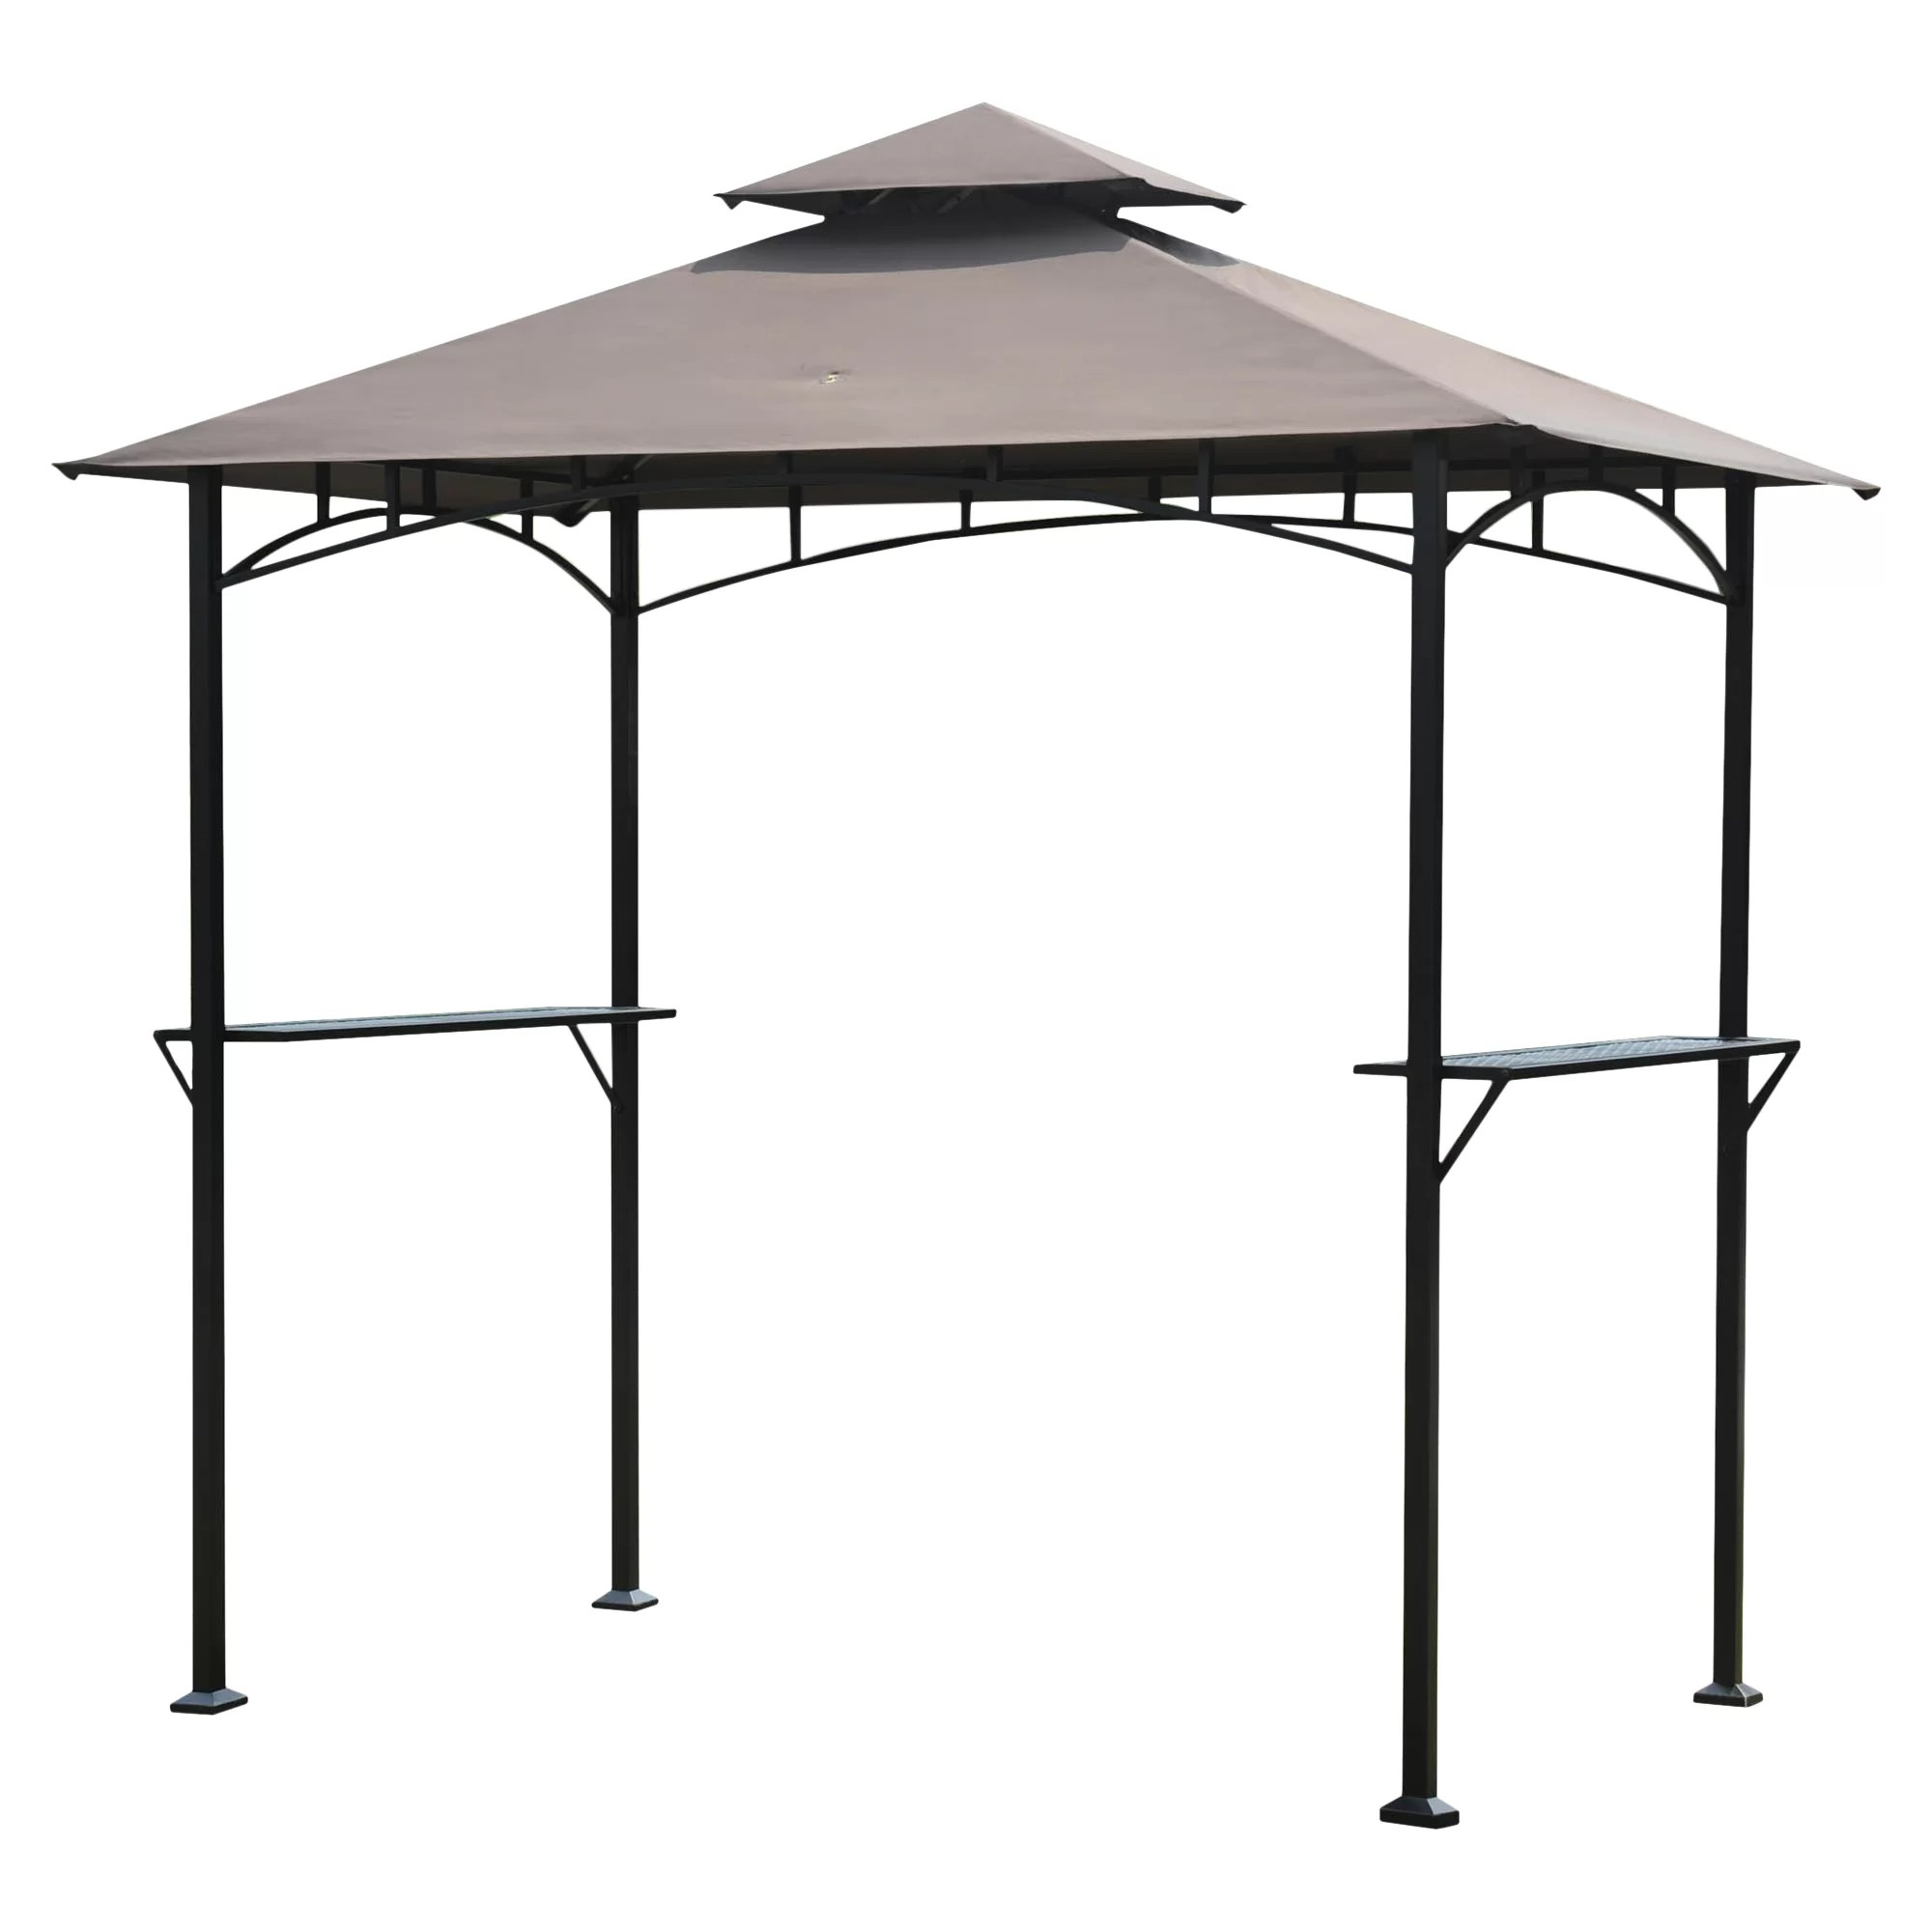 Grille Foot Sunjoy Henley 8 Ft W X 5 Ft D Steel Gazebo And Reviews